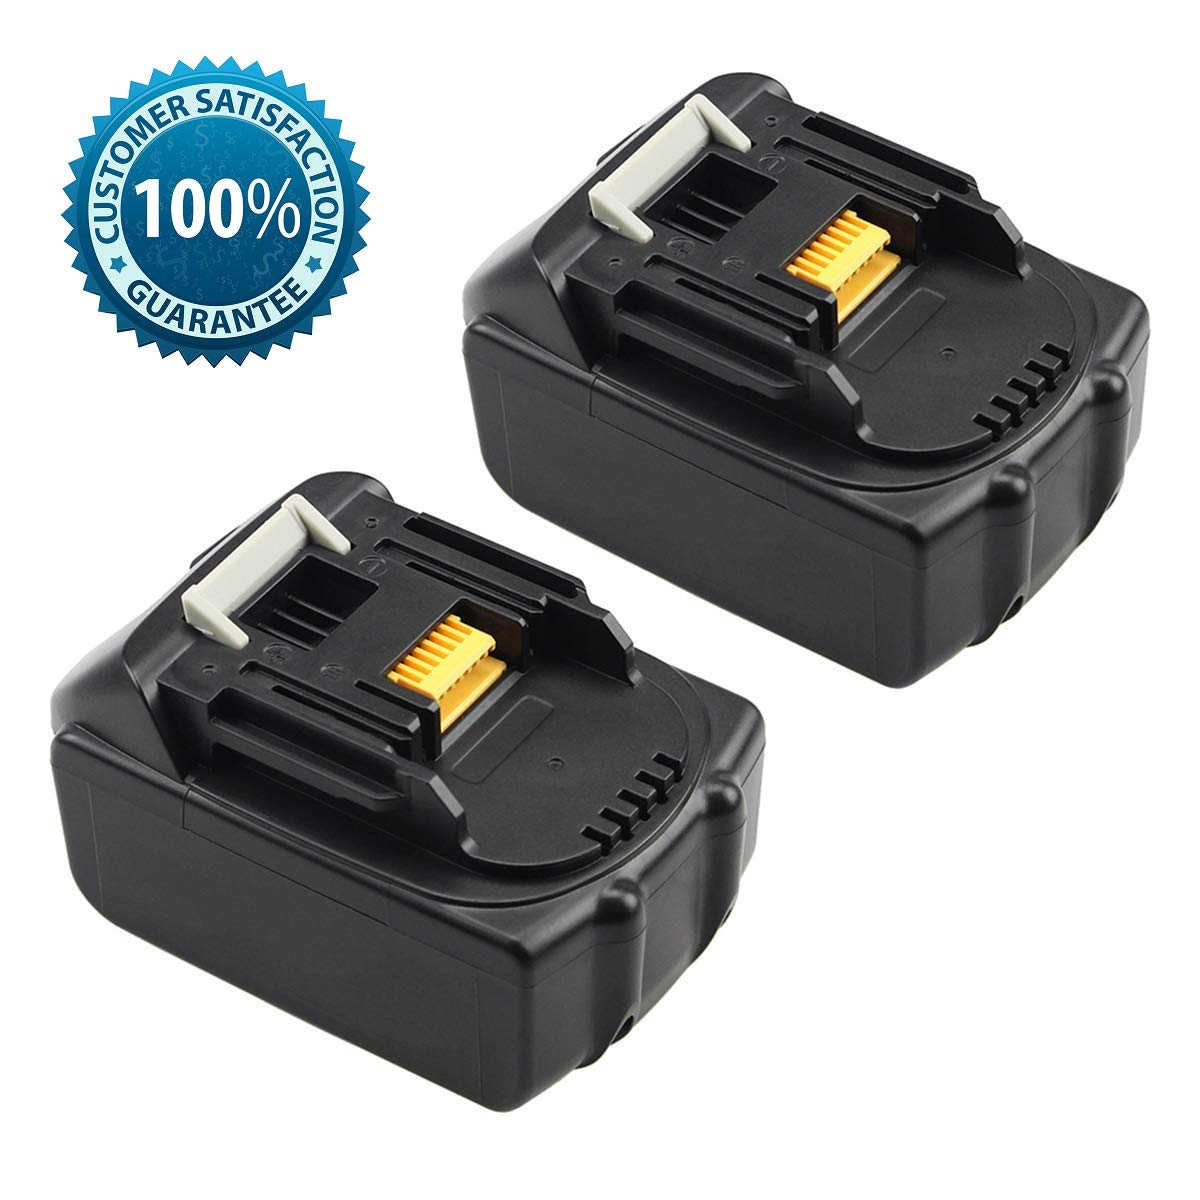 Eagglew Replace for Makita 18V Battery 5.0Ah LXT Lithium-Ion Replacement BL1850 BL1840 BL1845 BL1830 LXT400 Cordless Power Tools Batteries(2 Packs)